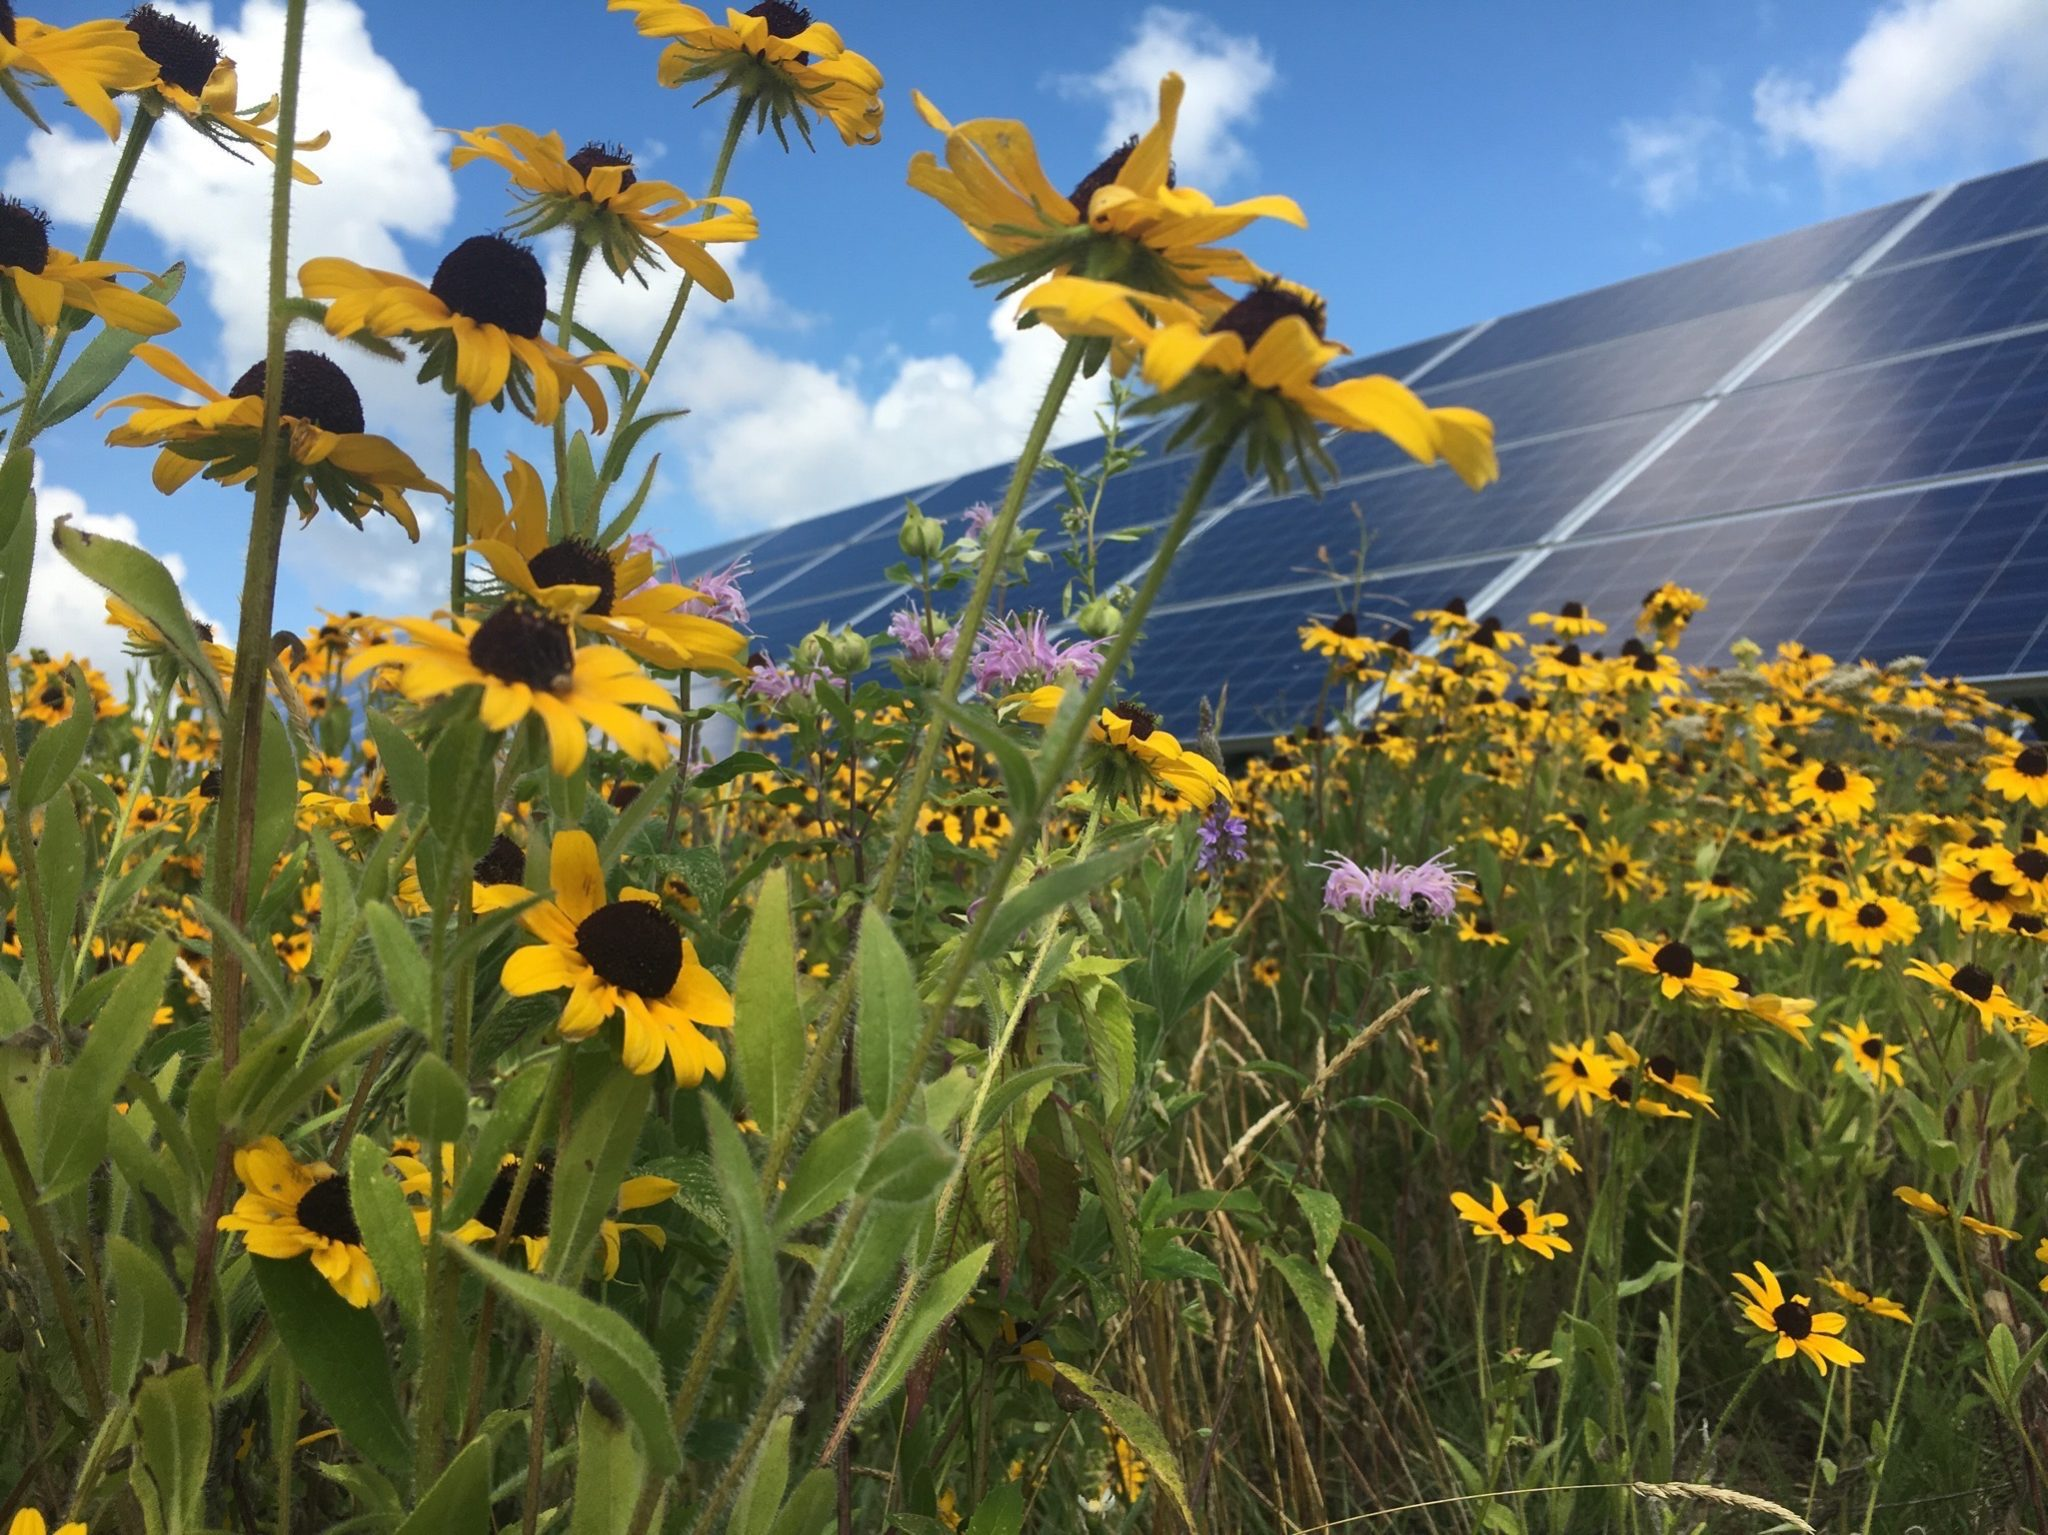 Organic Valley Goes 100% Renewable through Community Solar - Rocky Mountain Institute